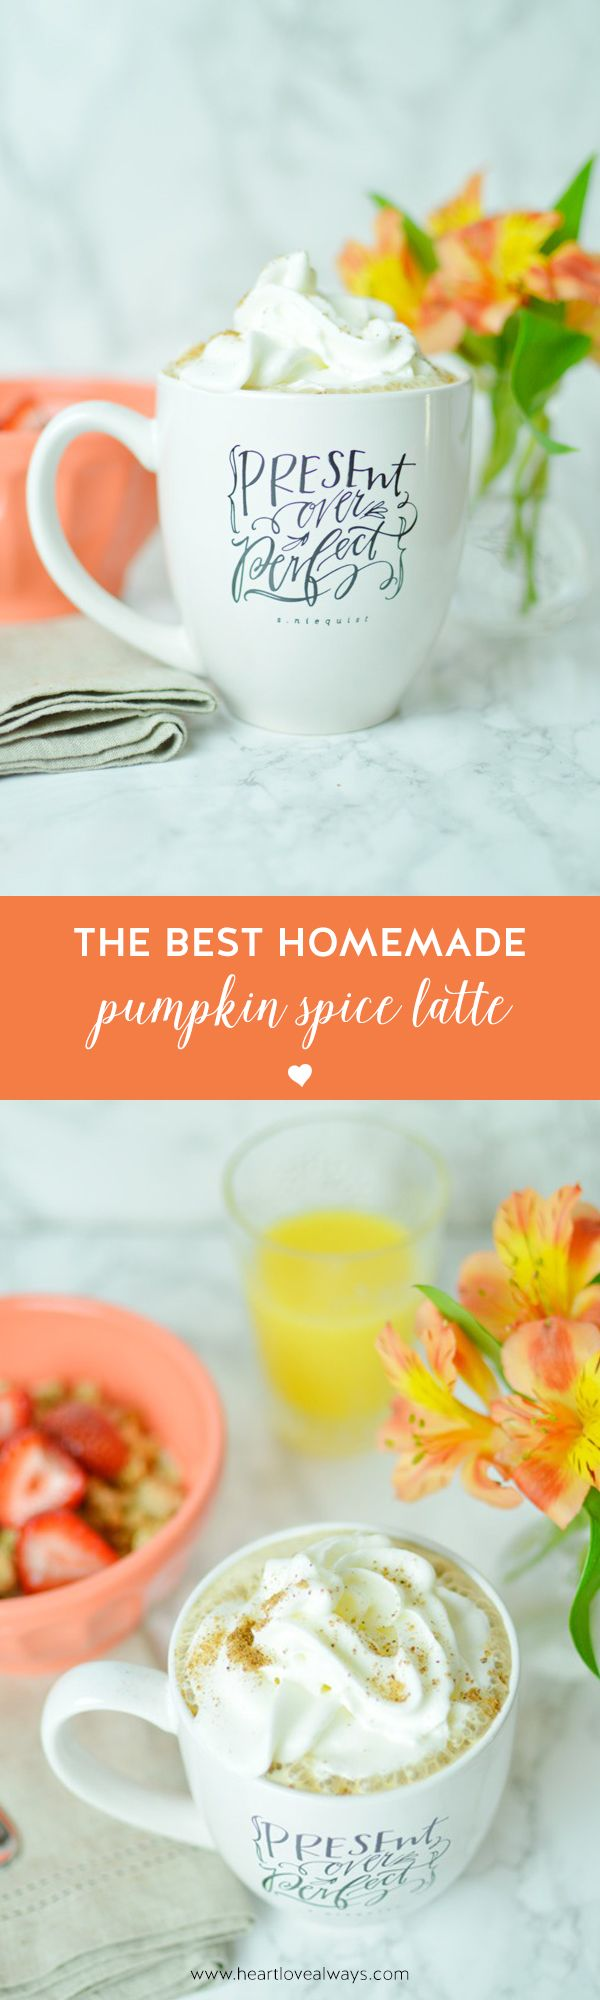 The best homemade pumpkin spice latte--ever! Get the (easy) recipe on heartlovealways.com! Just need to figure out a vegan version!